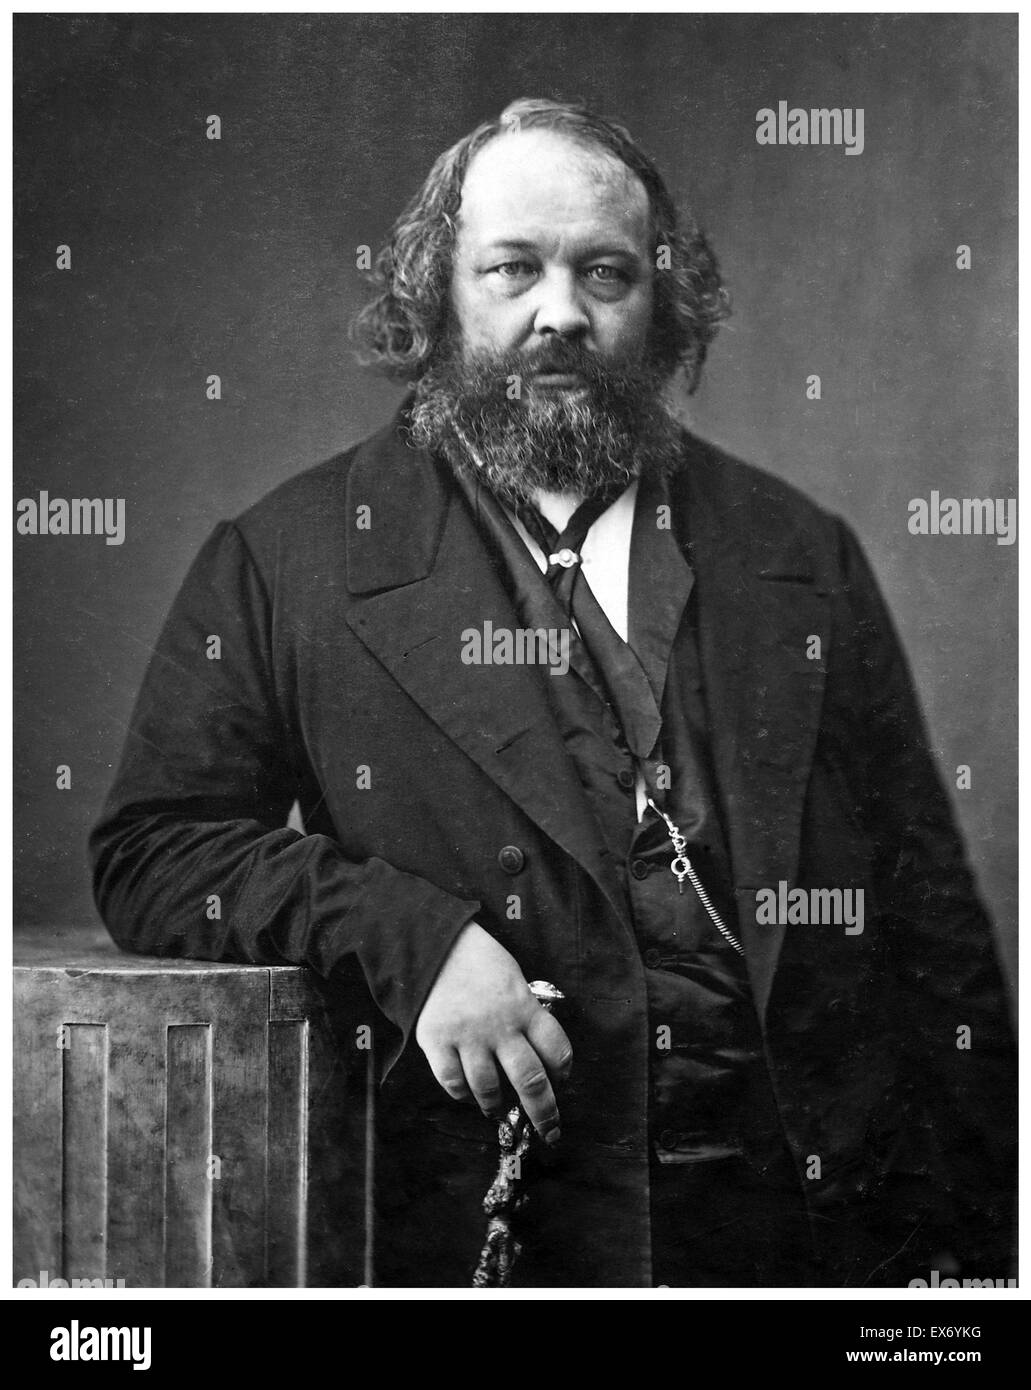 Mikhail Alexandrovich Bakunin (1814 – 1876) Russian revolutionary anarchist, and founder of collectivist anarchism. - Stock Image